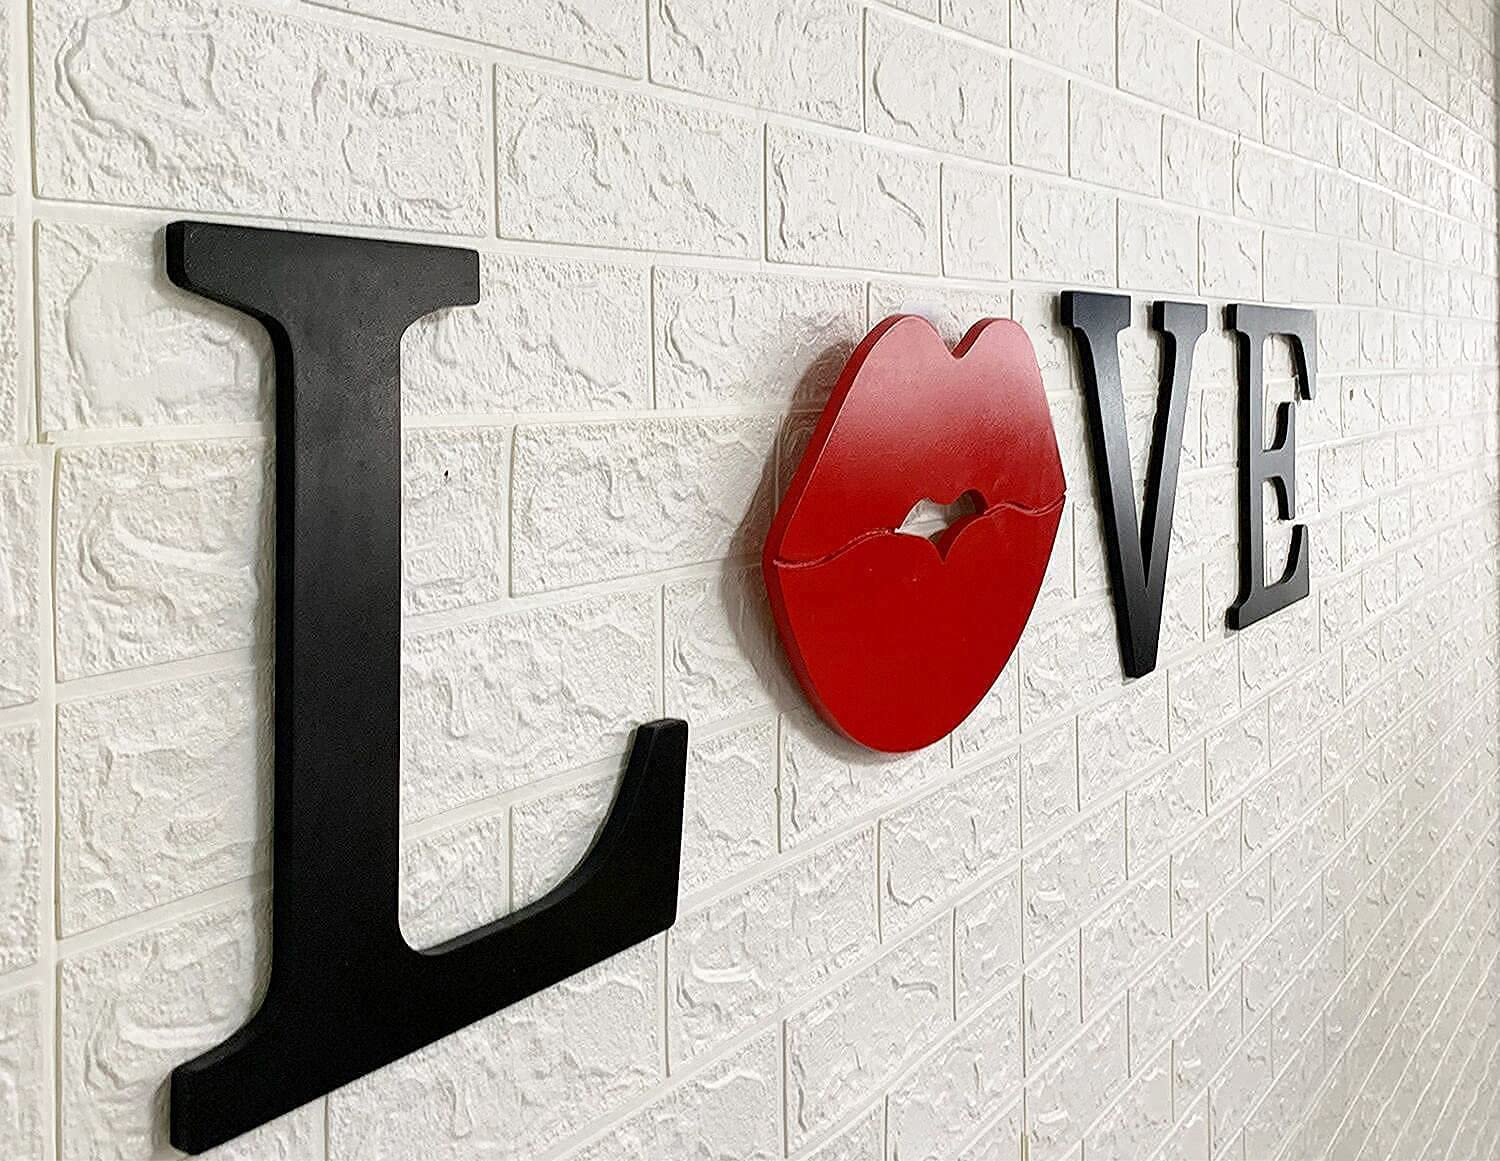 Wooden Love Signs for Home Decor 4 Pieces Wood Wall Art Love Letters Decoration for Wall Decor Red Lips Sign Artwork for Wedding Black and Red Couple Sign for Bedroom Ready to Hang